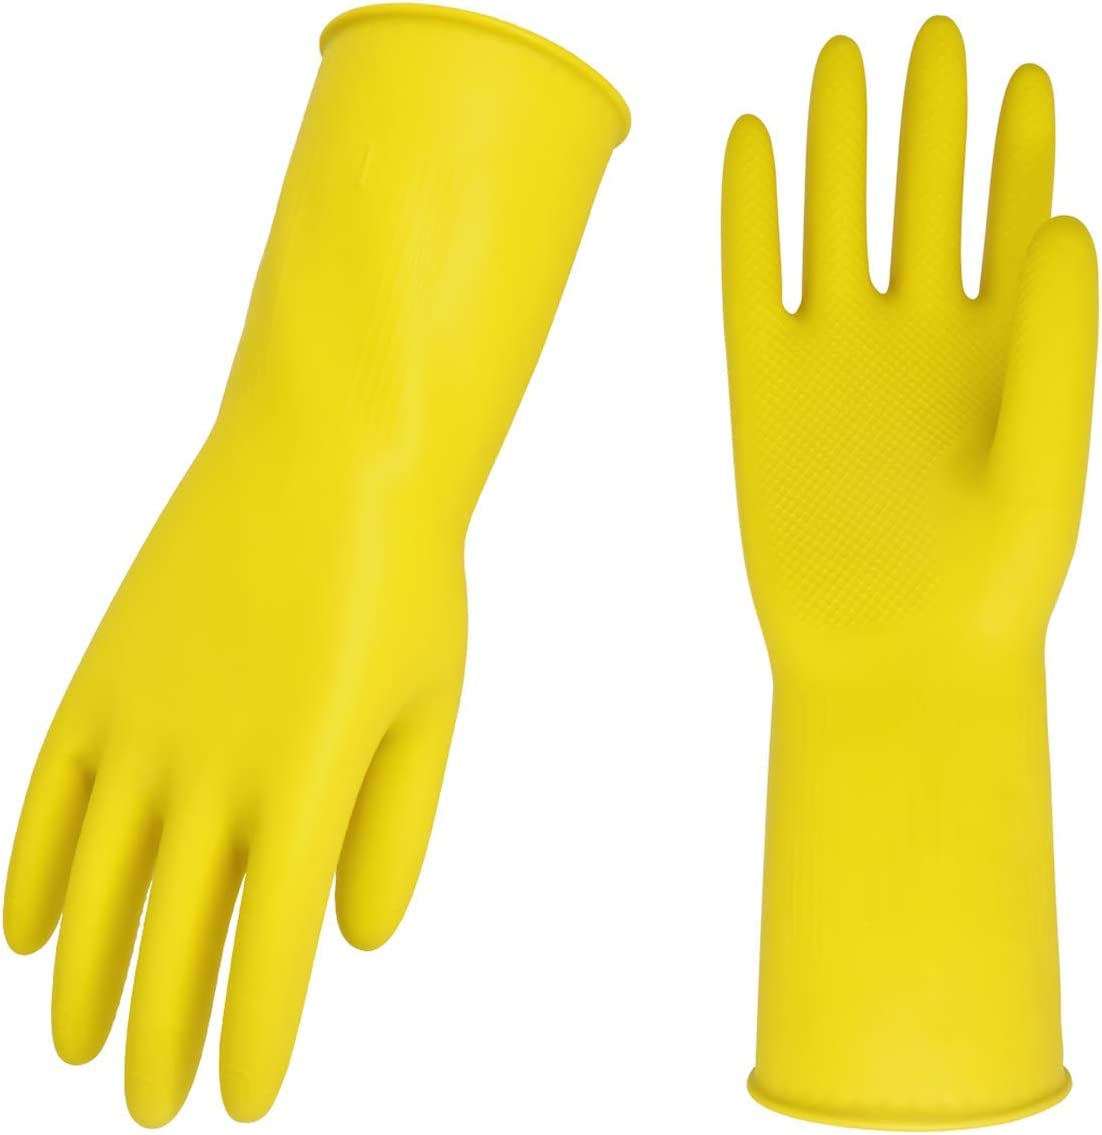 Pairs Reusable Household Gloves